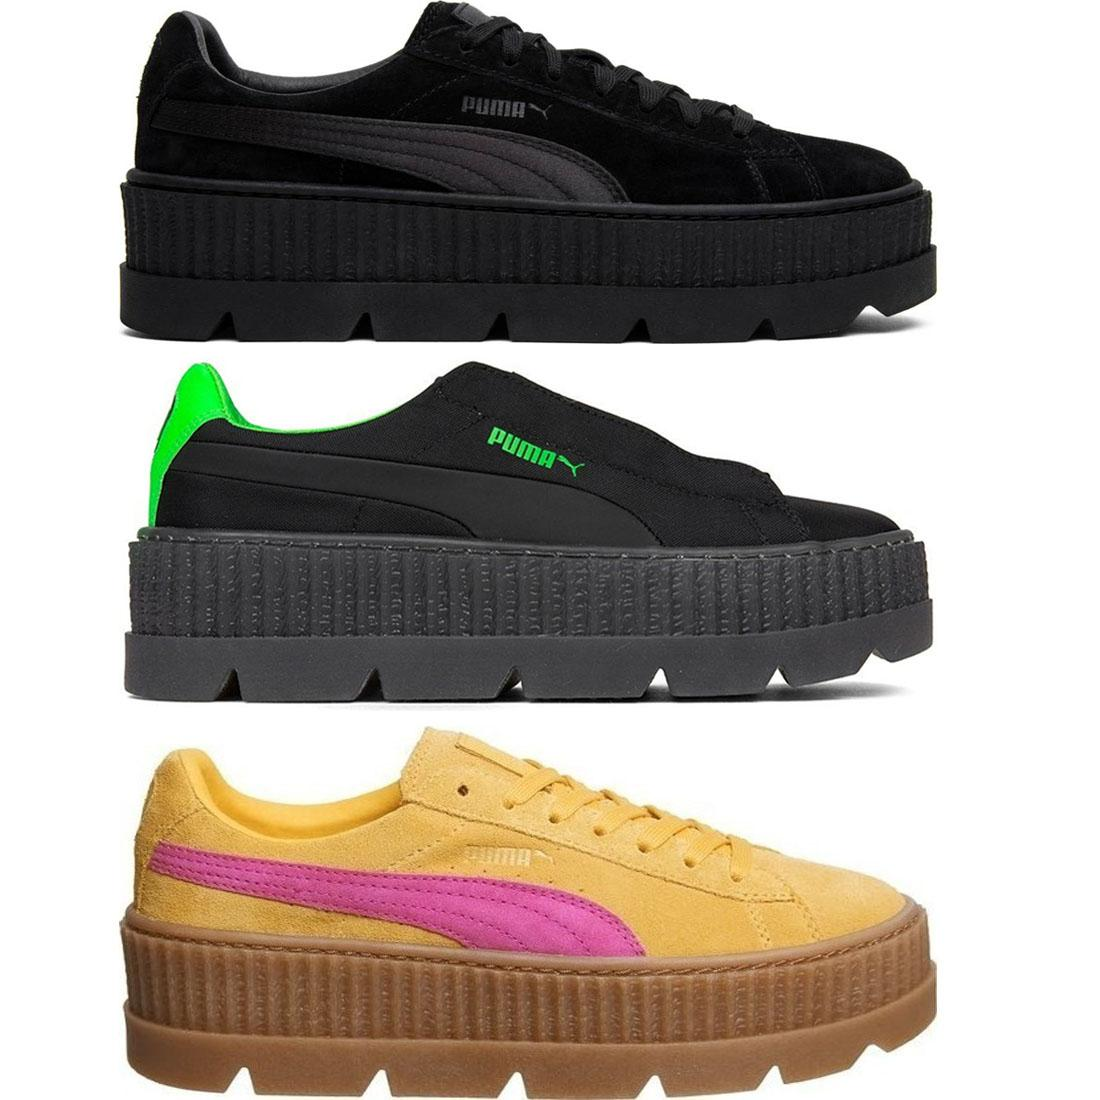 08020901f0 PUMA Fenty X Rihanna Cleated Creeper Ladies Suede Black Green Yellow  Trainers